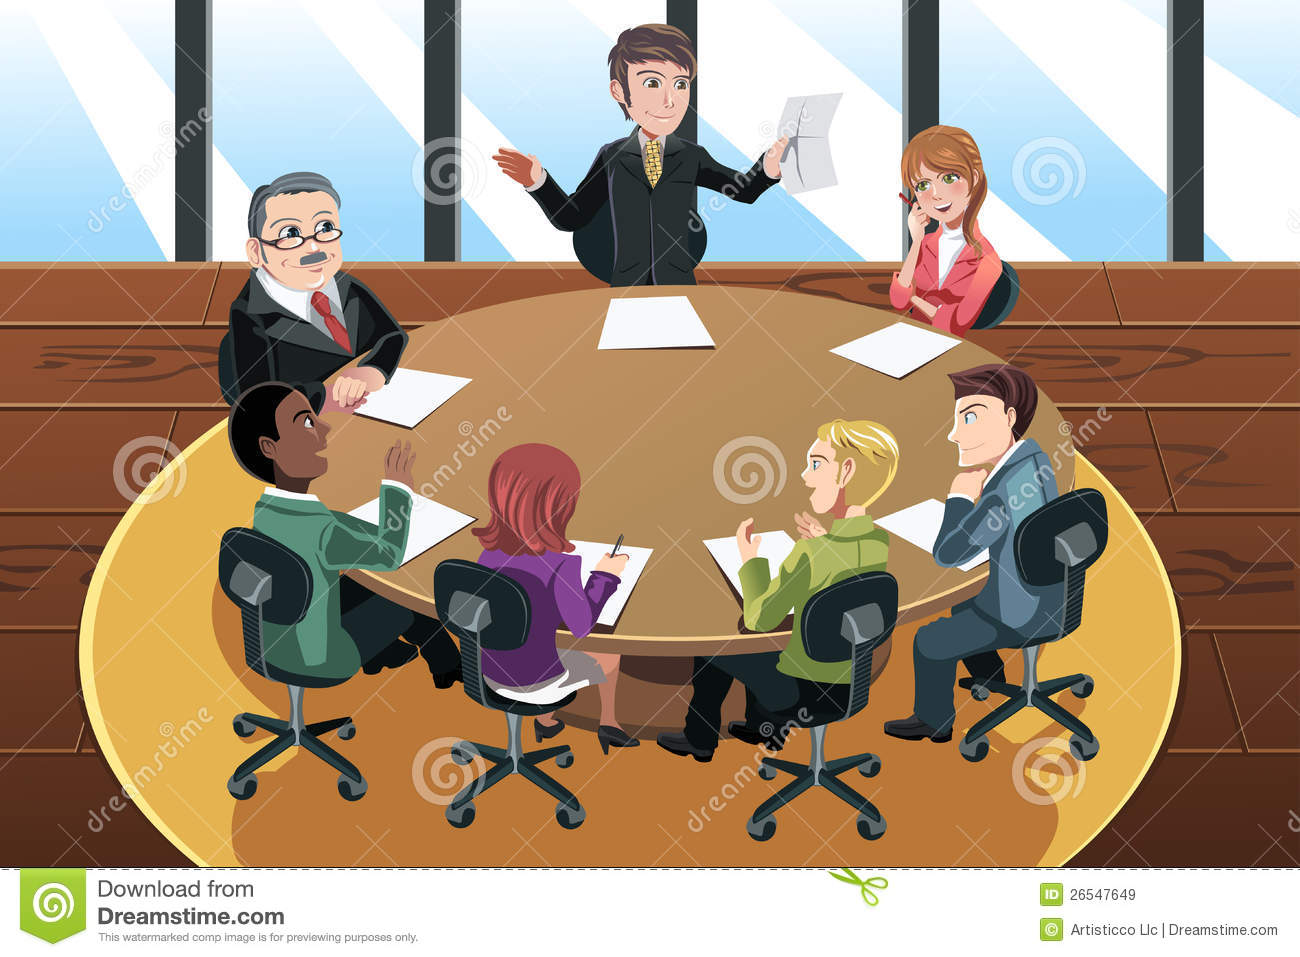 vector illustration of a business people in a meeting in the office.